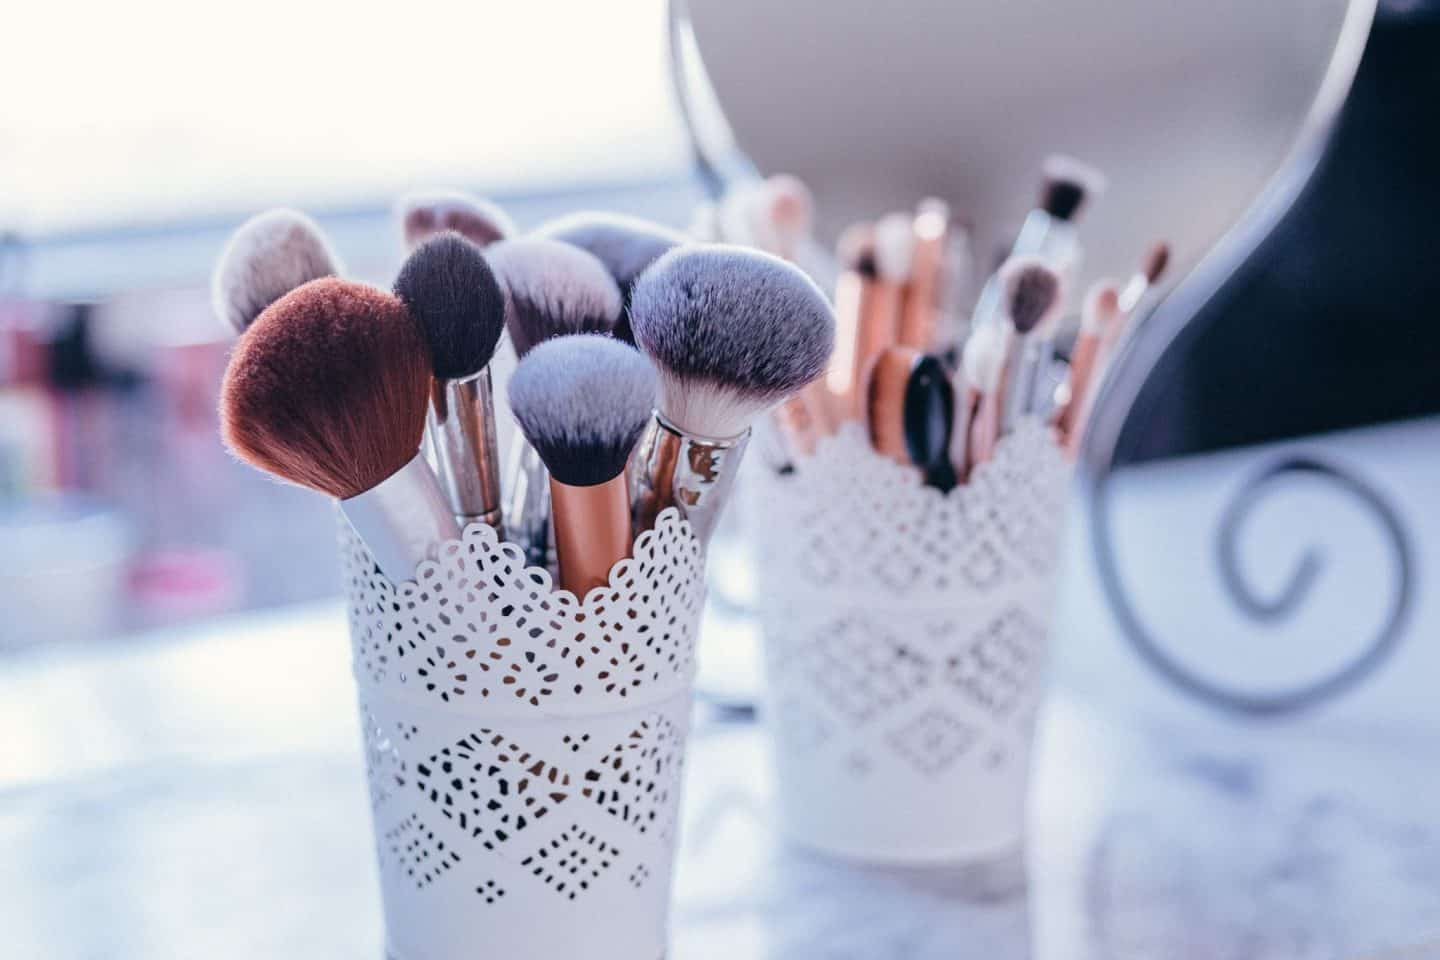 5 Beauty Blogger Favourites That Don't Work For Me (and what did instead!)